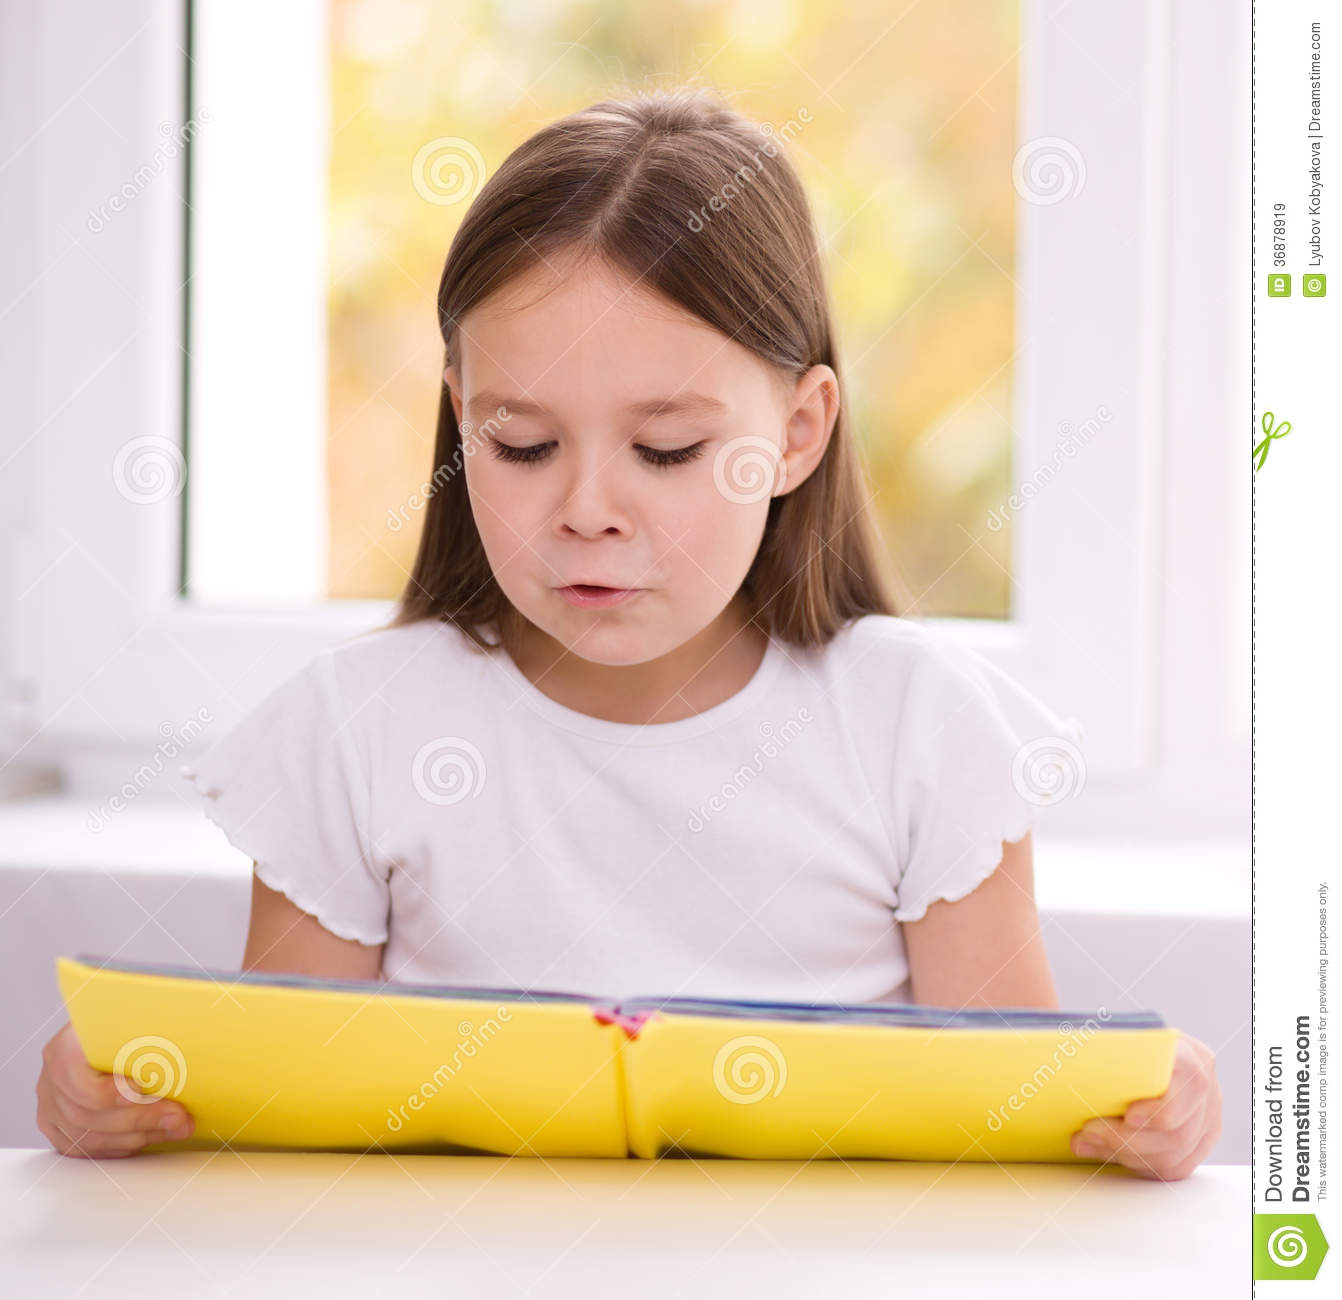 Download La Bambina Sta Leggendo Un Libro Immagine Stock - Immagine di cute, intelligente: 36878919